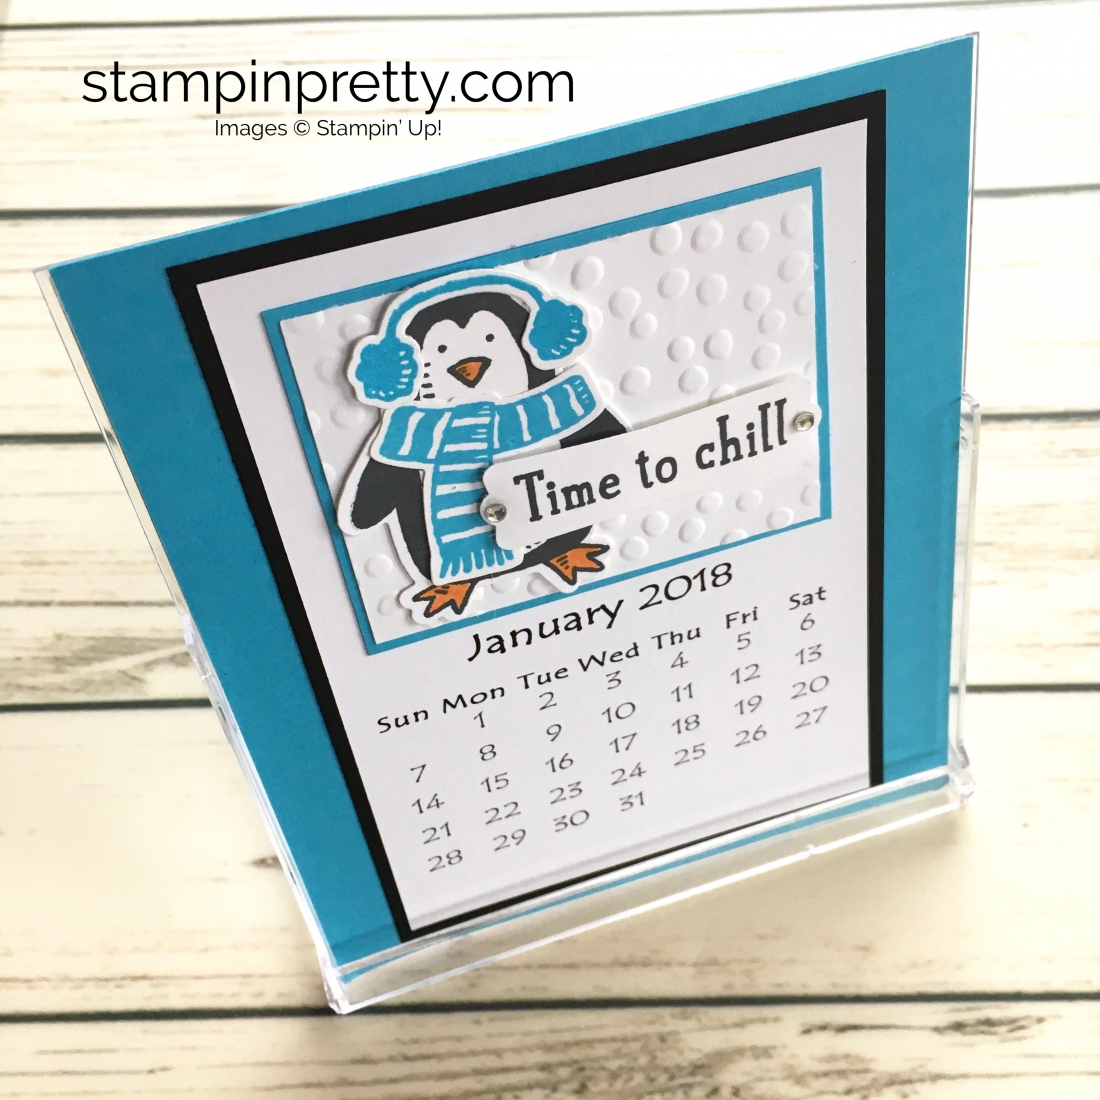 Learn how to create this CD case calendar with Stampin Up products - www.stampinpretty.com StampinUp